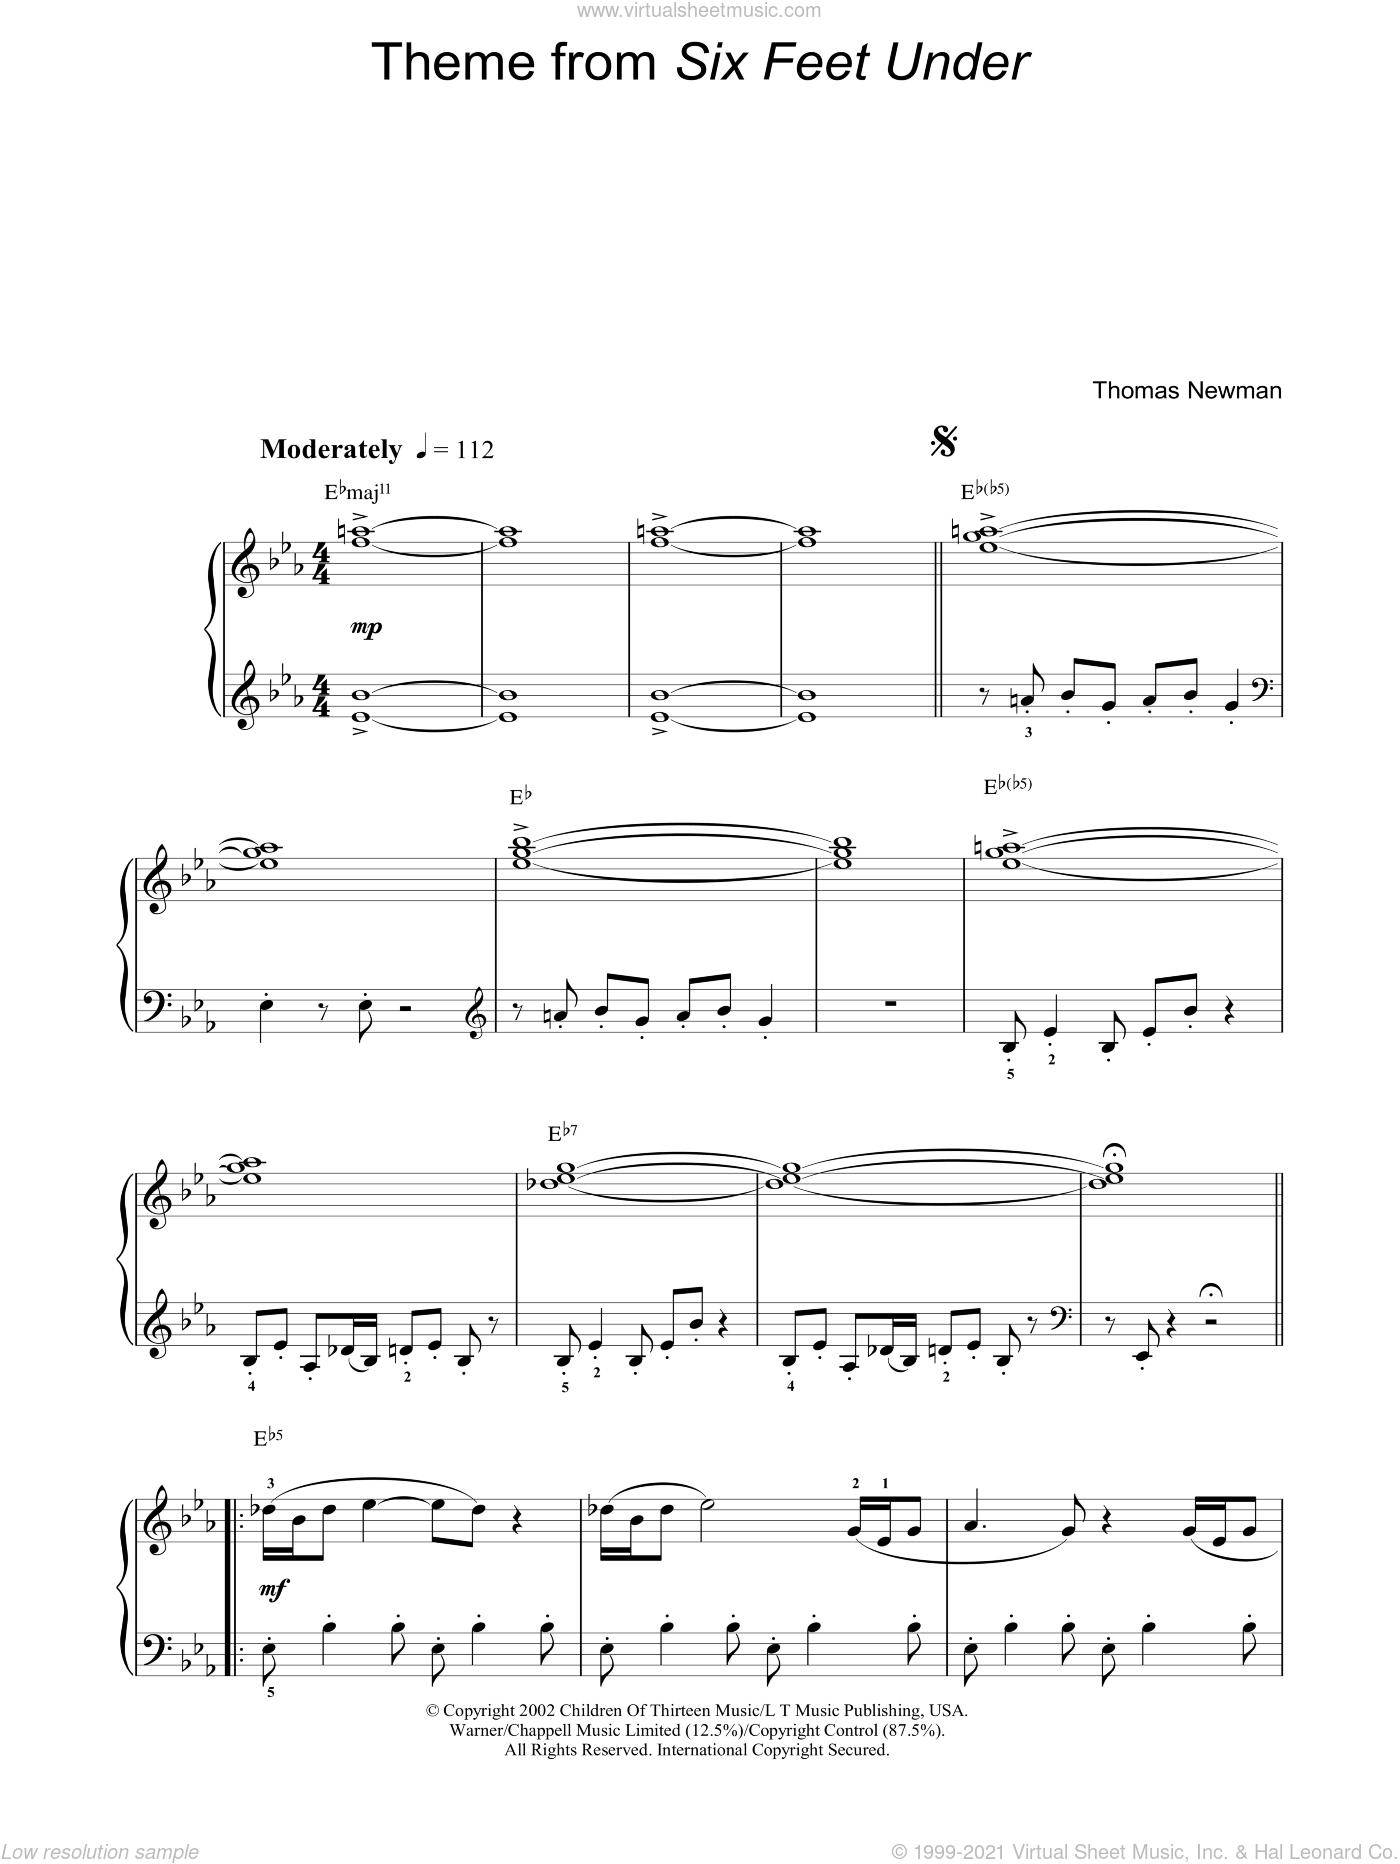 Theme from Six Feet Under sheet music for piano solo by Thomas Newman, easy skill level